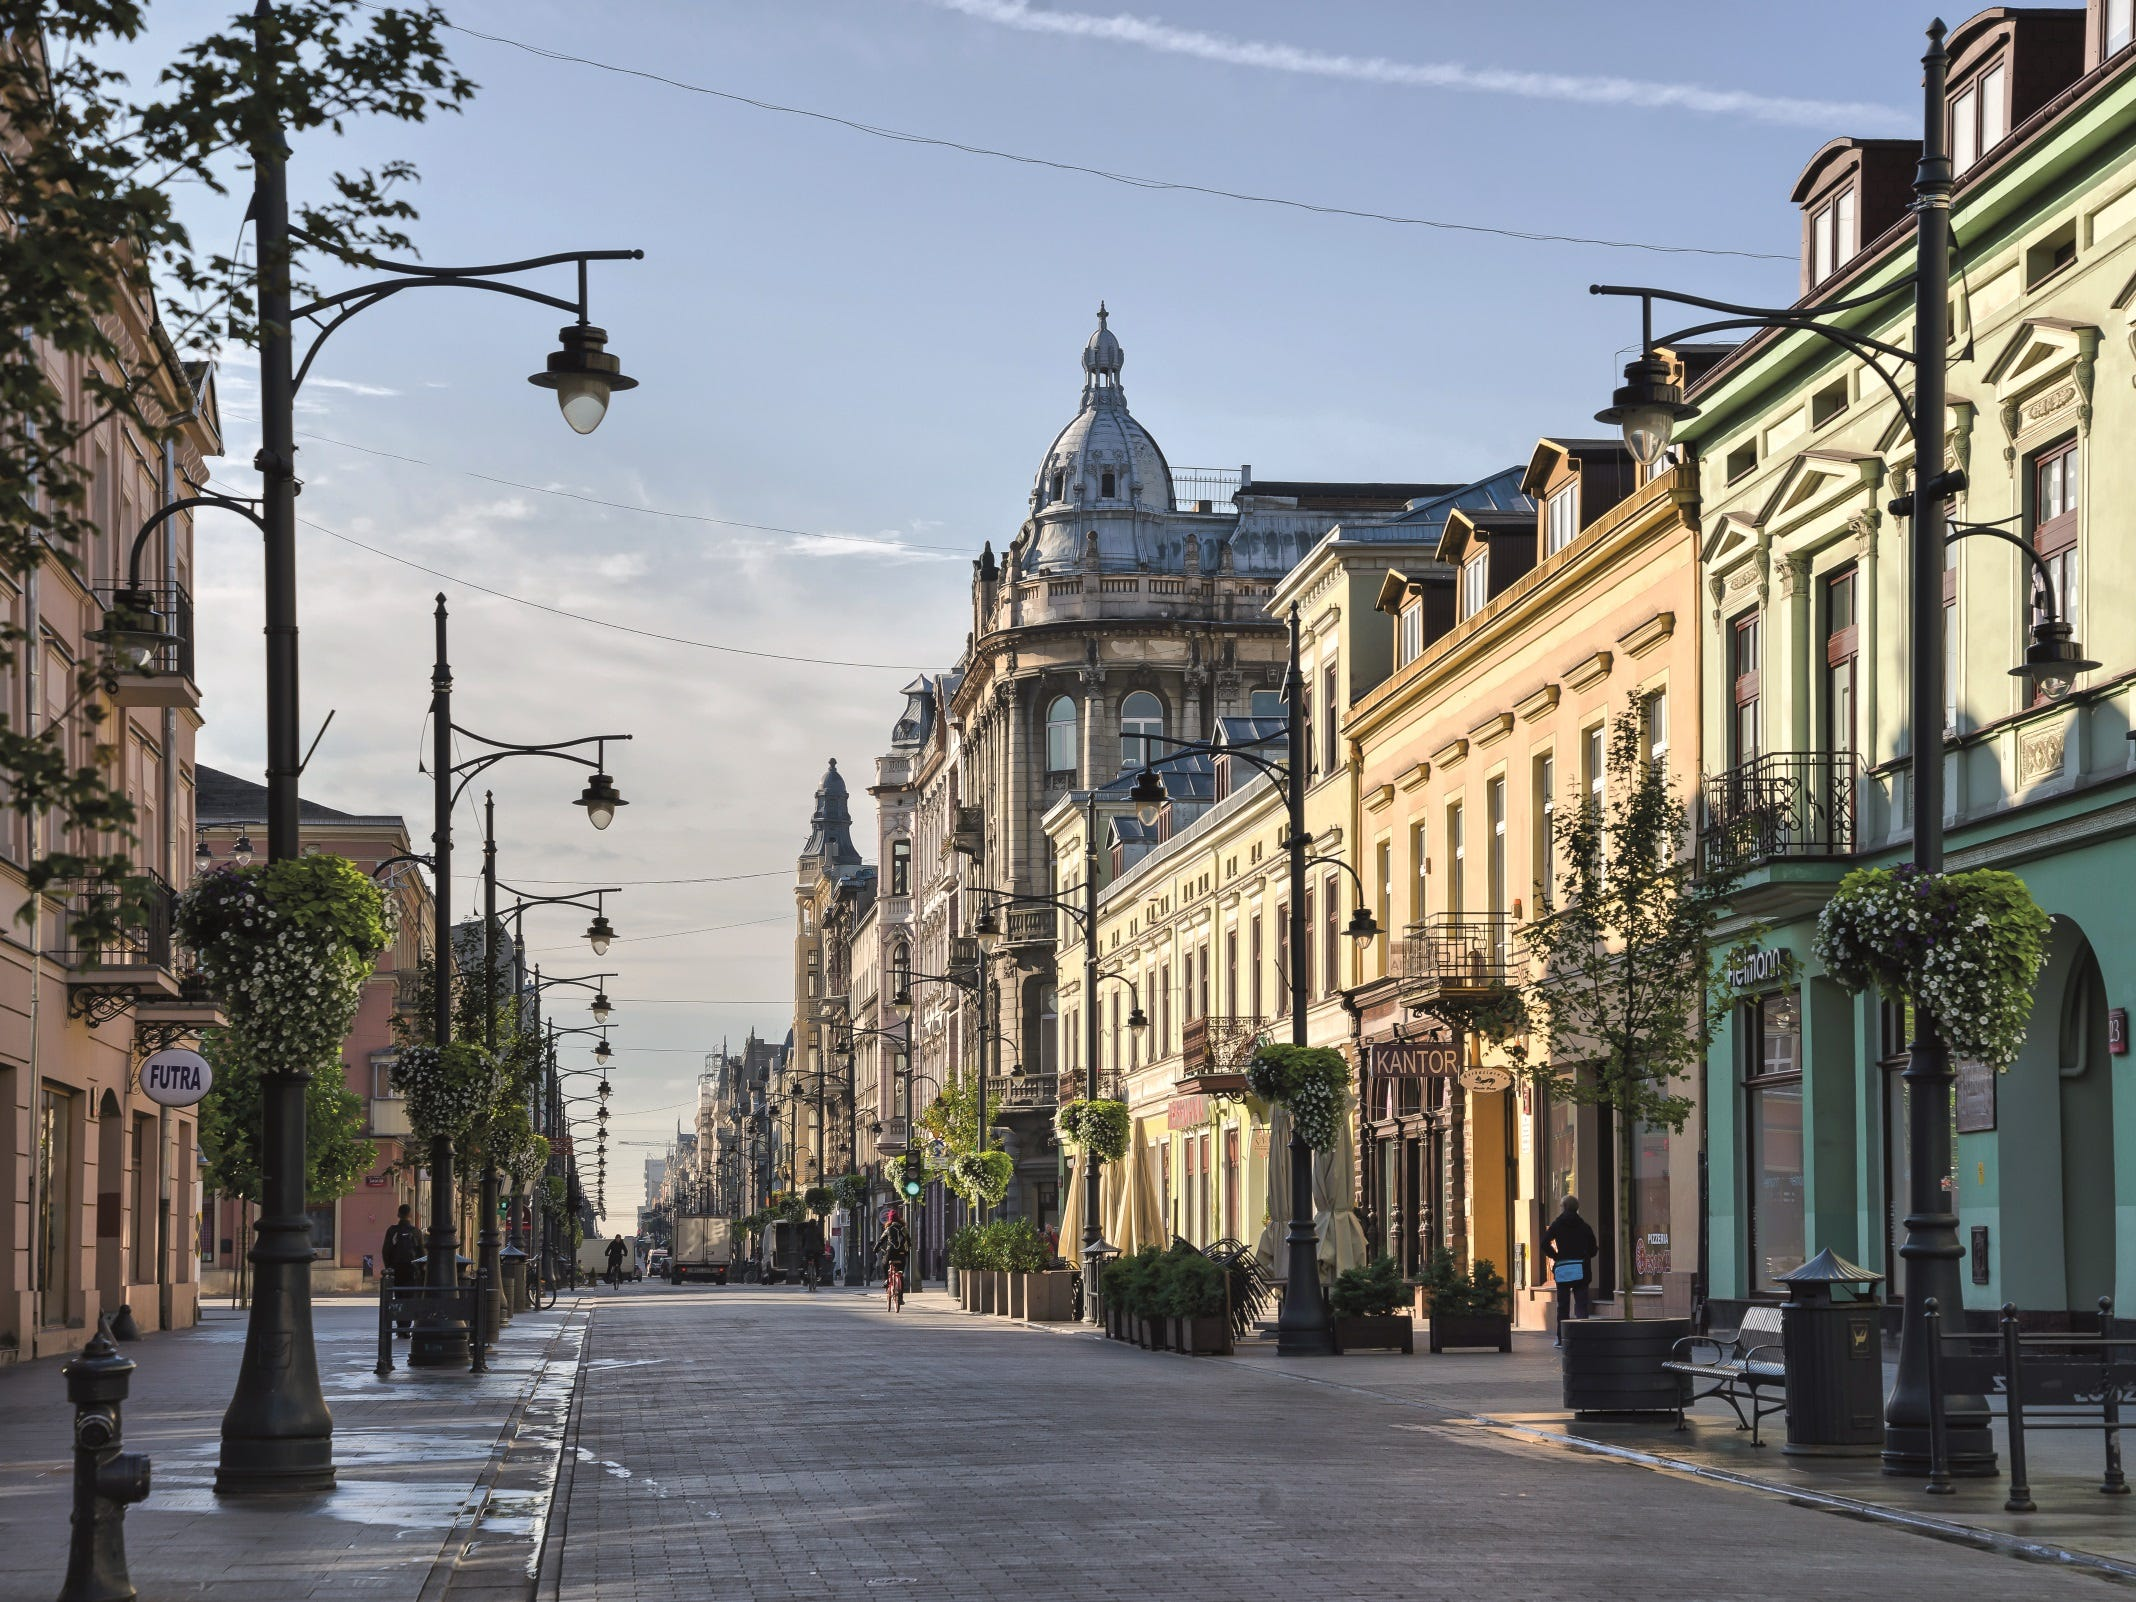 No. 2 on the list of best value places to visit in 2019 is Łódź, Poland.